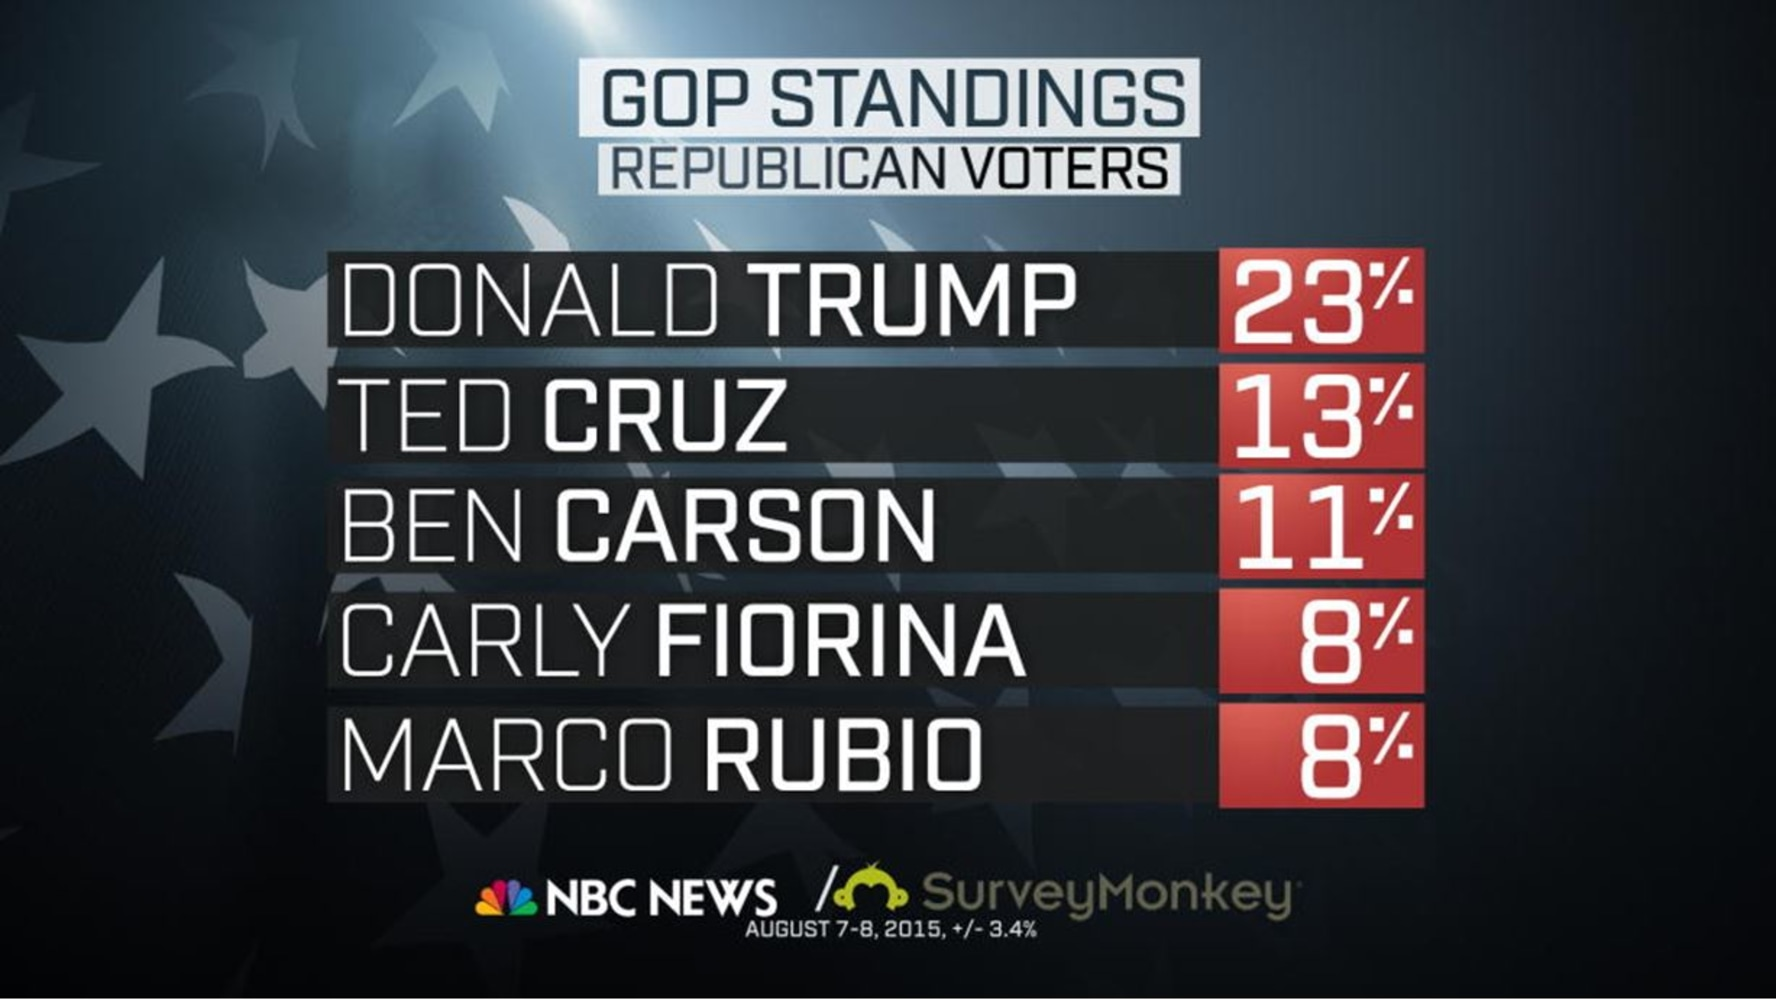 Nbc News Online Poll Conducted By Survey Monkey Graphic 1